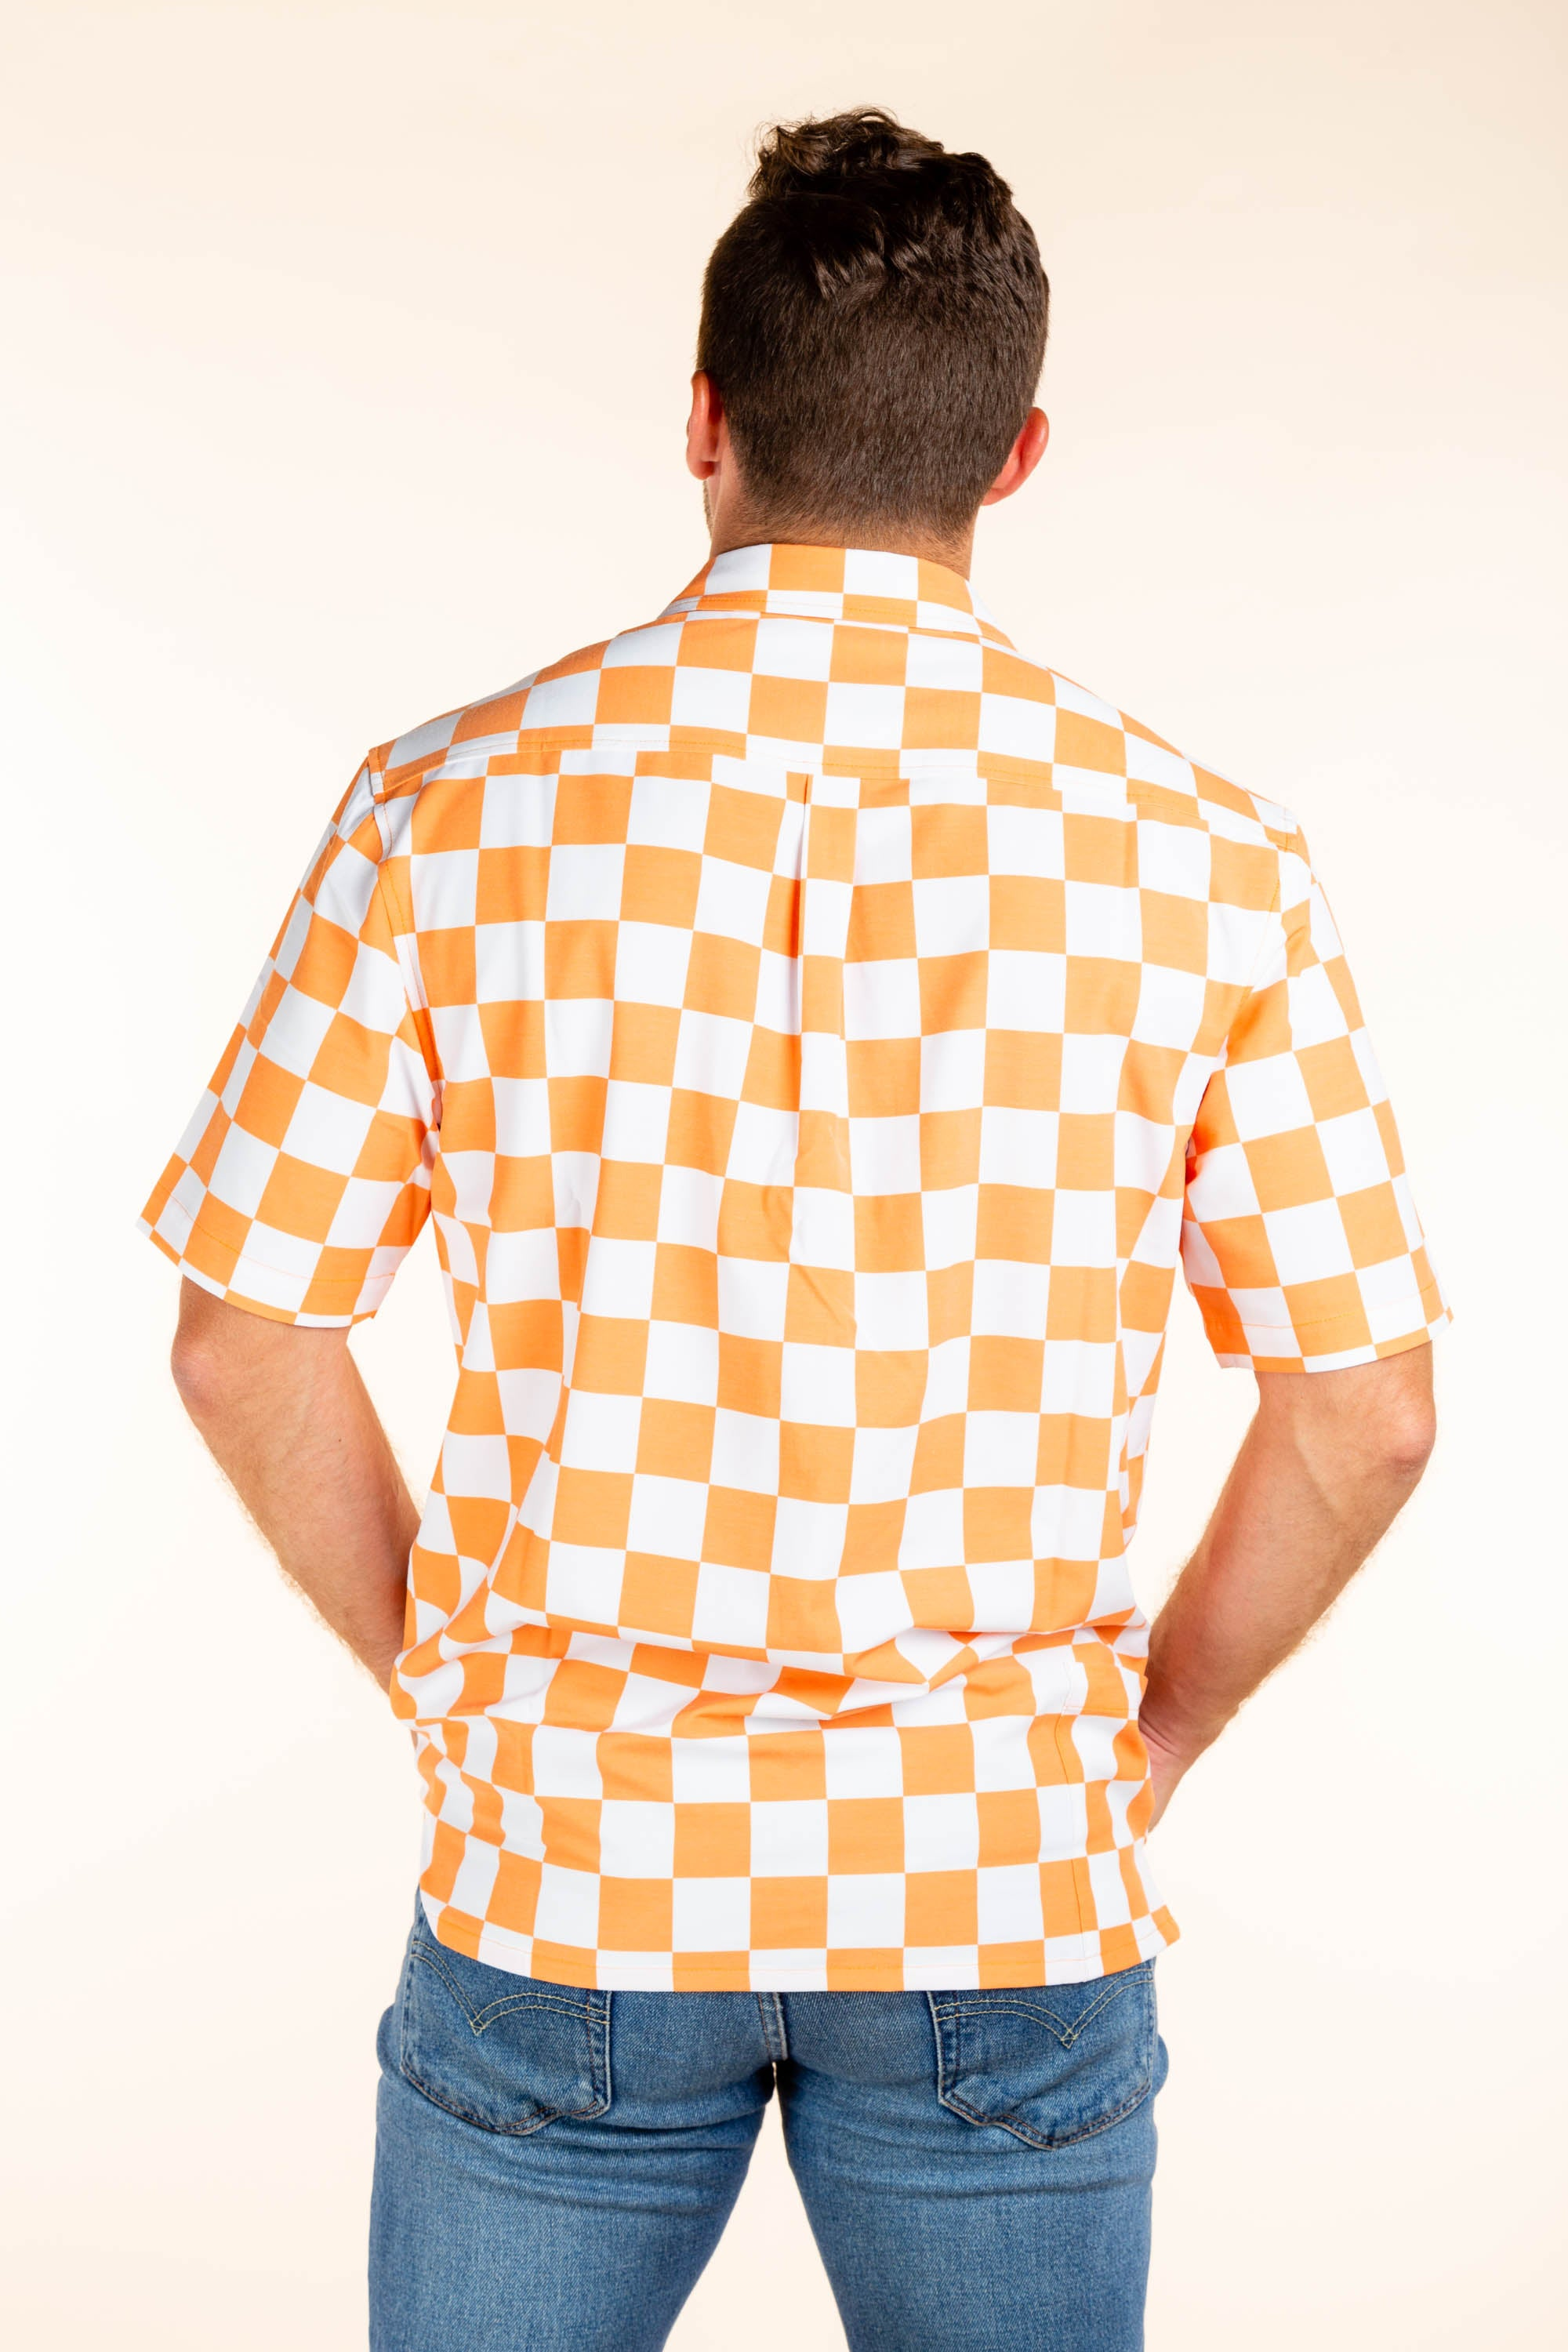 University of Tennessee Checkered Tailgating Shirt